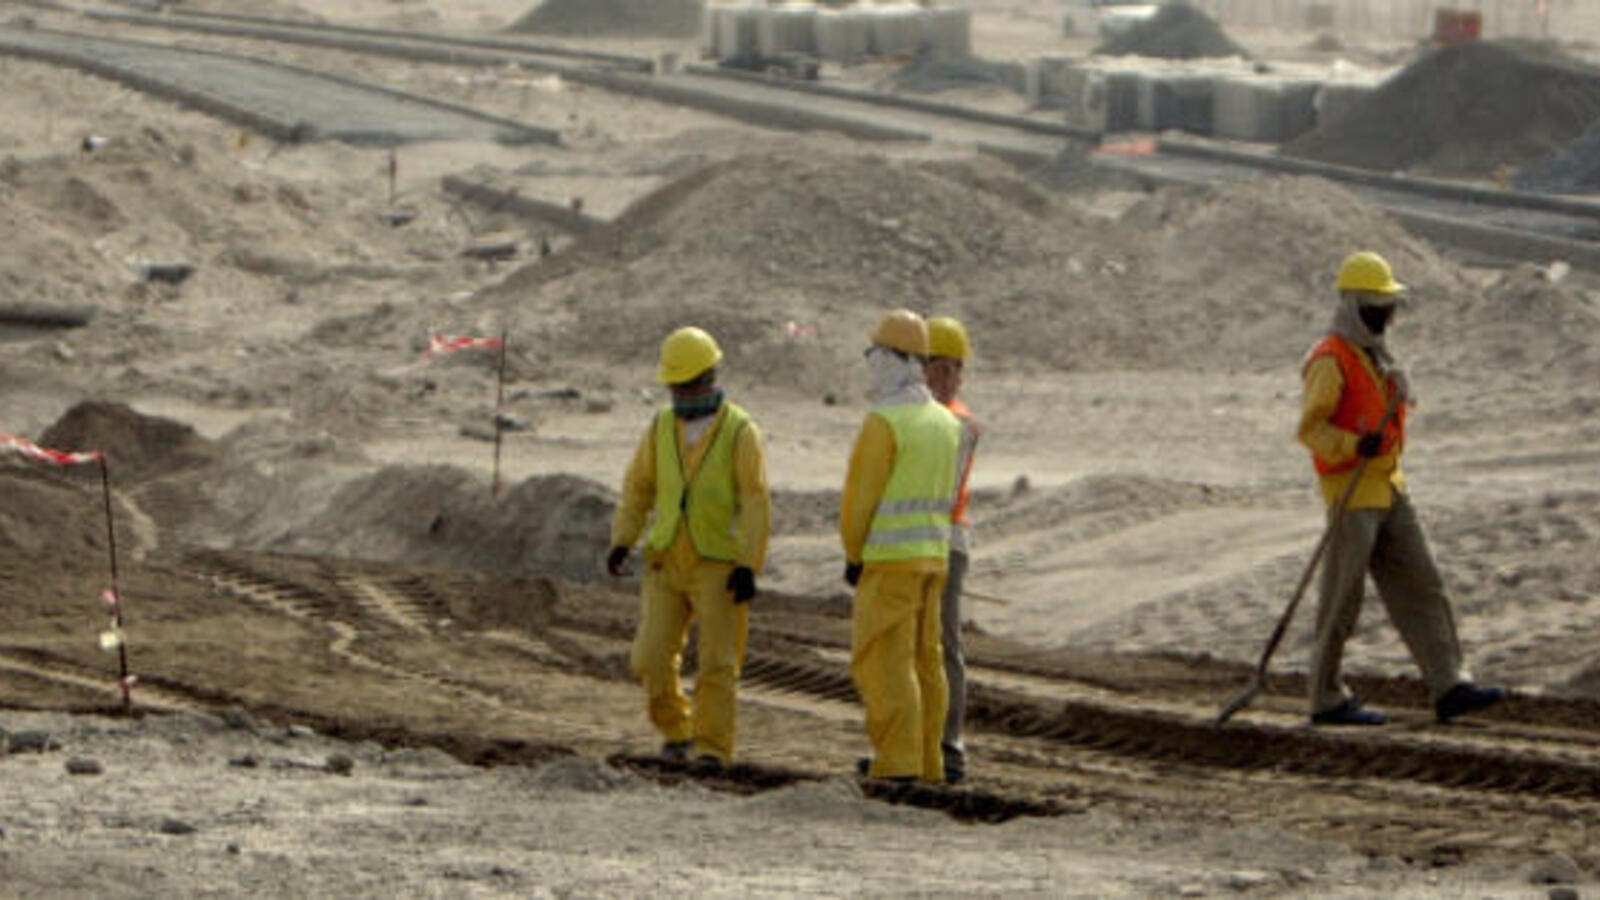 Workers in Abu Dhabi (AFP/File Photo)